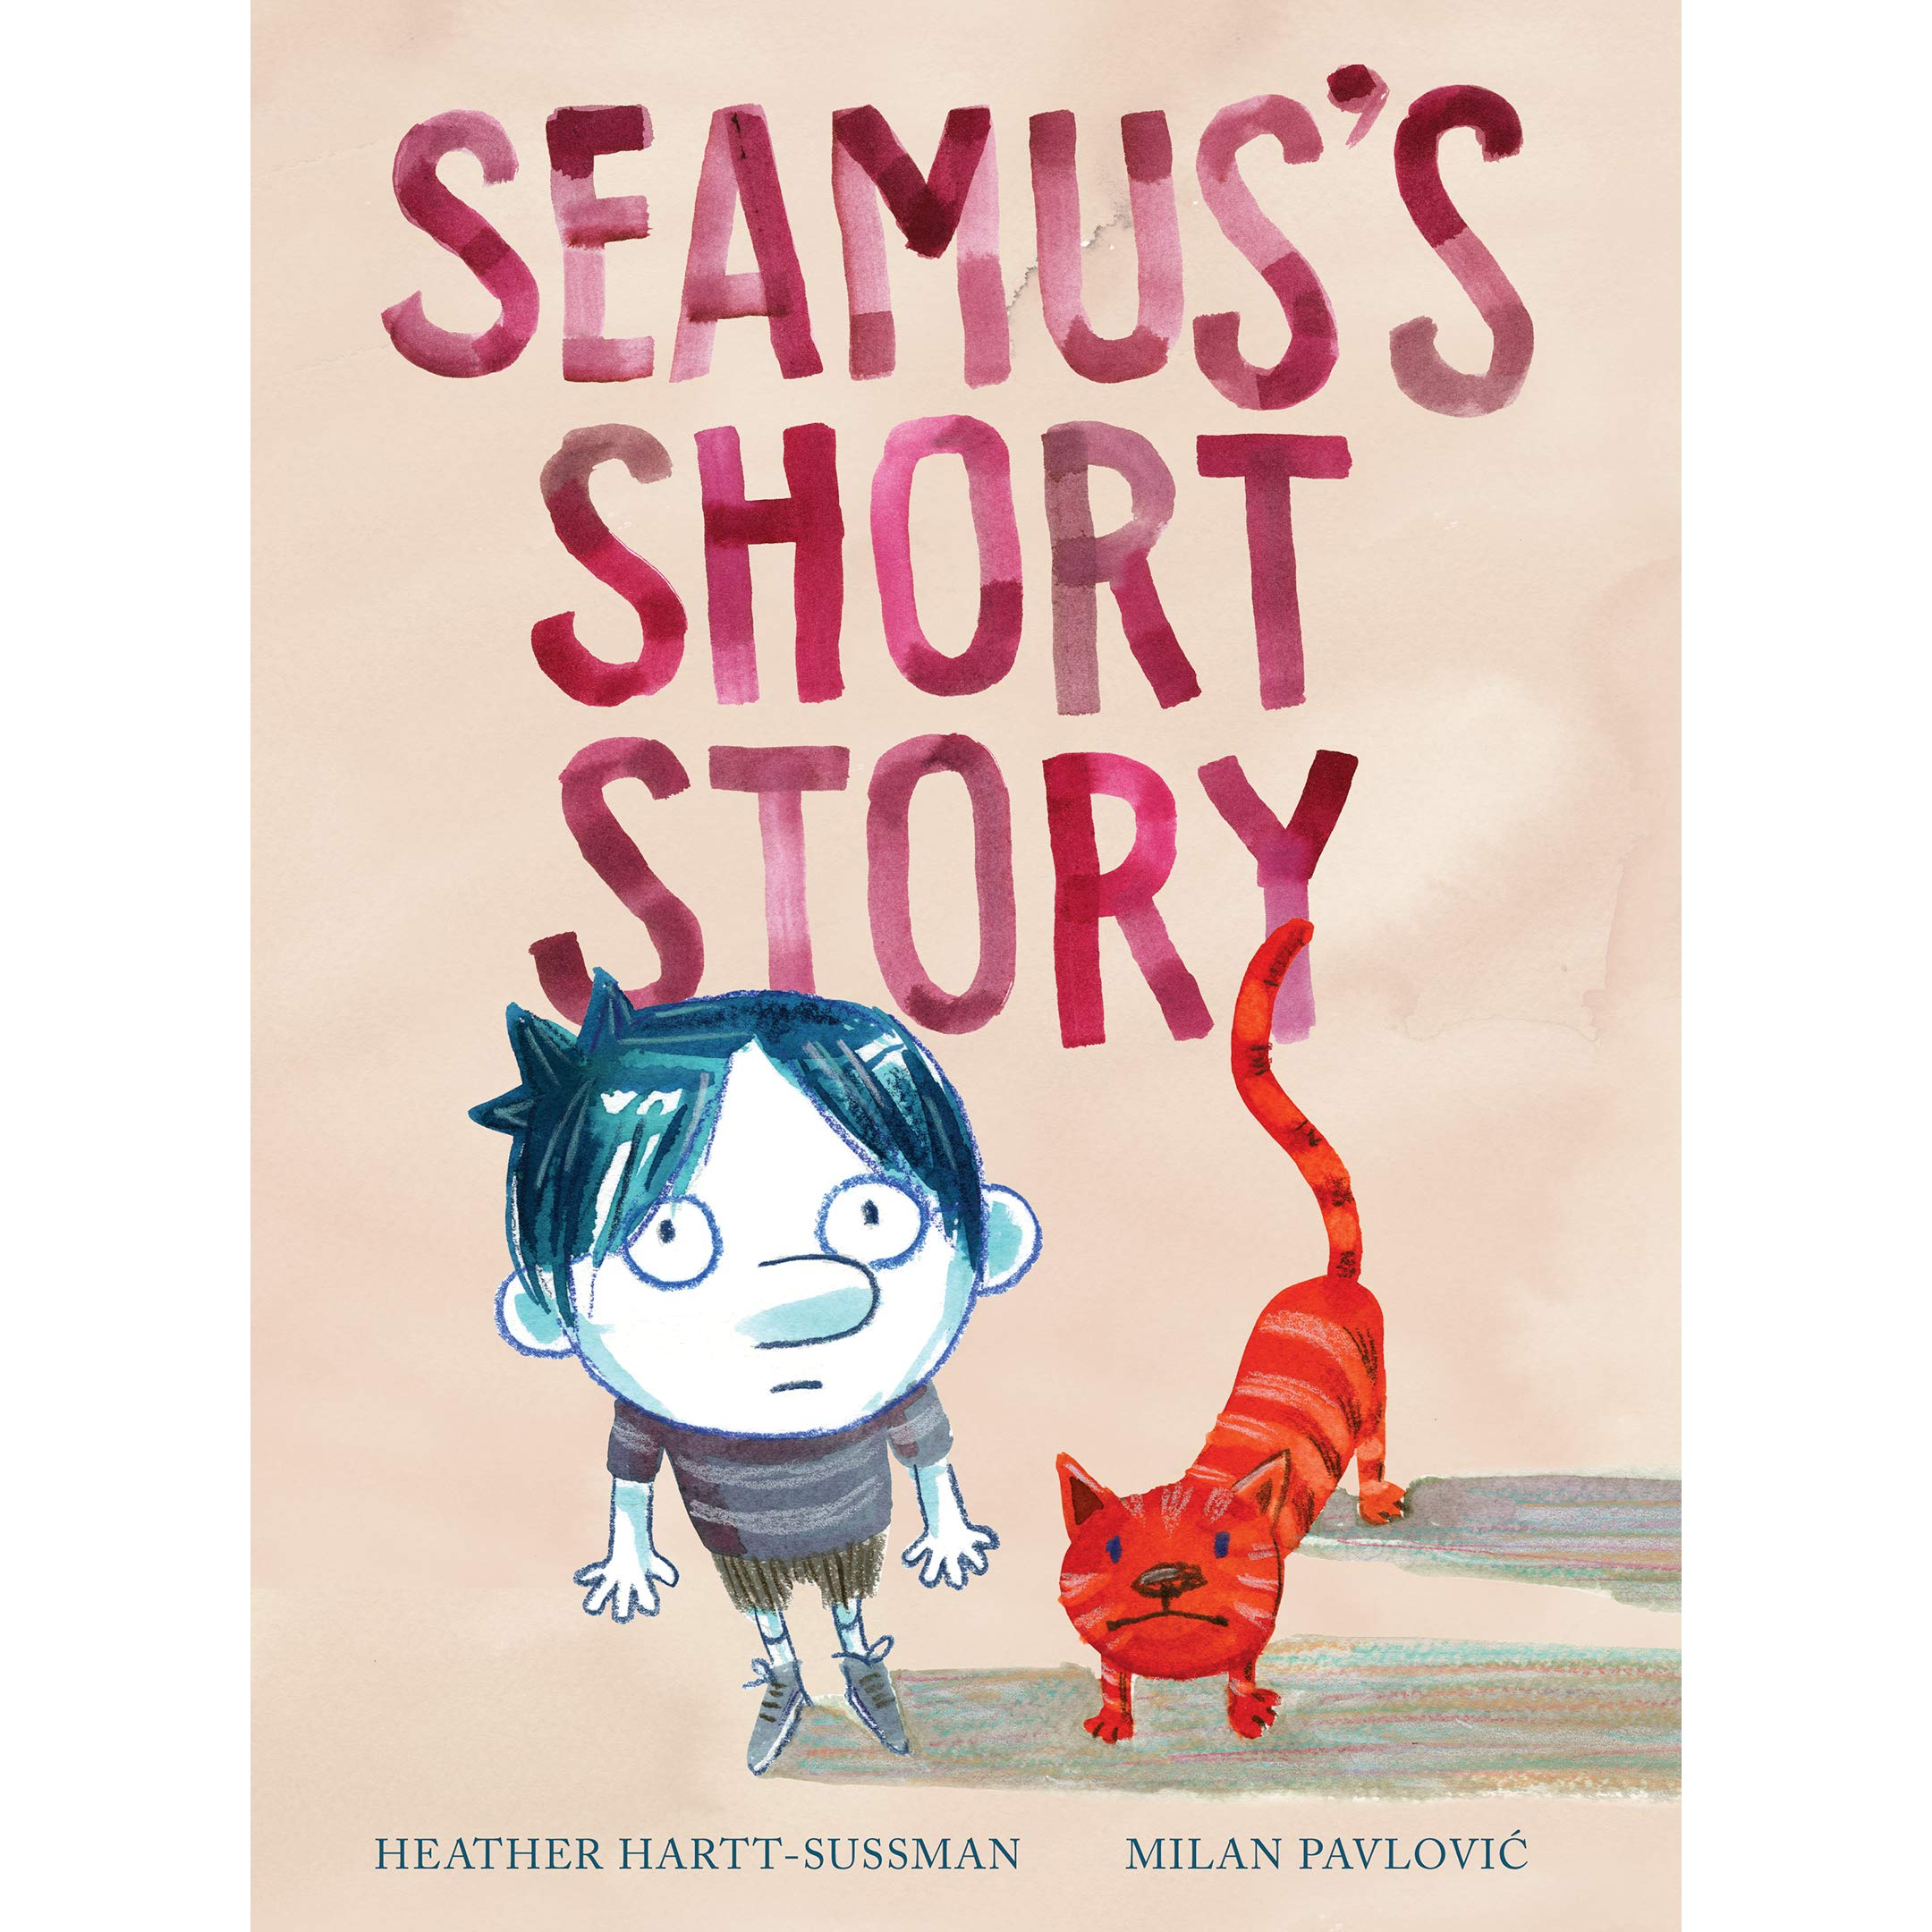 seamus's short storyby heather hartt-sussman - Seamus would give anything to be taller! One day, while playing dress-up in his mother's closet, he finds a way to reach new heights.Acclaimed picture book author Heather Hart-Sussman brings a light touch to this nuanced story about acceptance, resourcefulness and love, complemented by the humor and beauty in Milan Pavlovic's colorful paintings of Seamus's world — where there are times to be tall and times to be small.